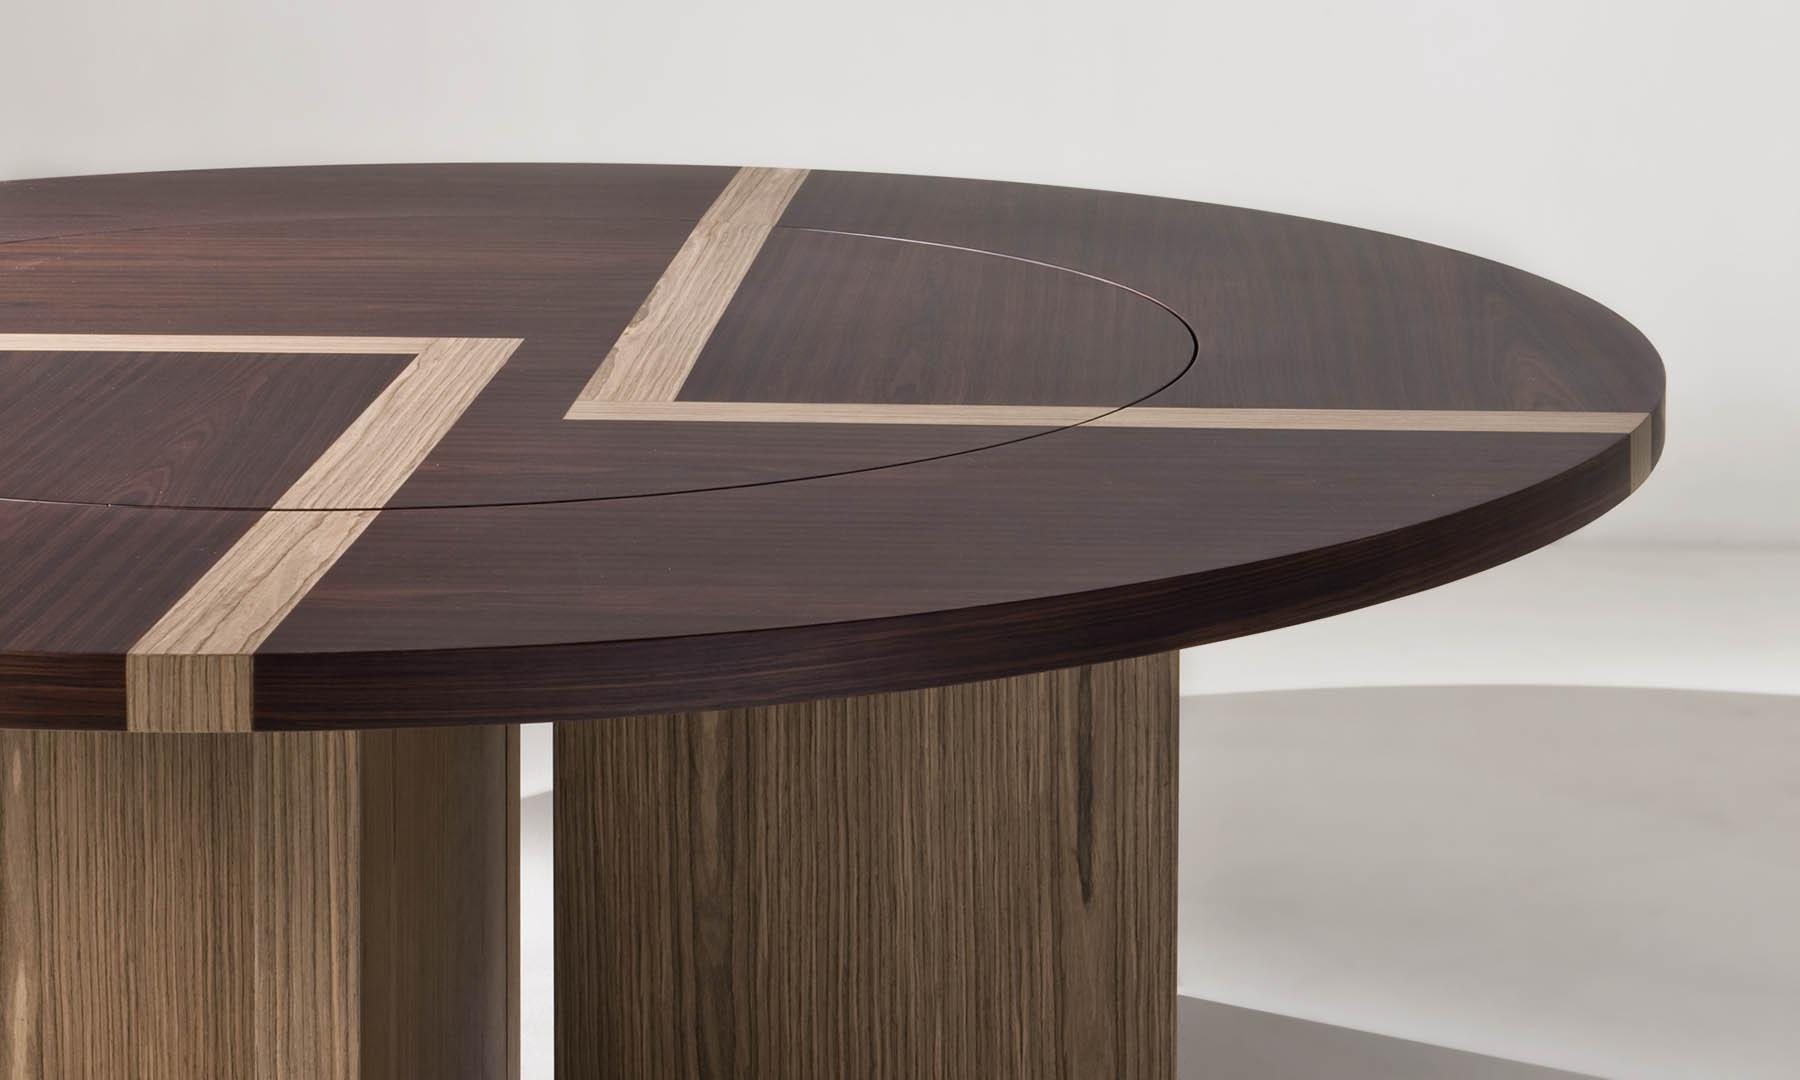 laurameroni bd 07 round table with lazy susan rotating top in rosewood and walnut canaletto wood with inlays on top